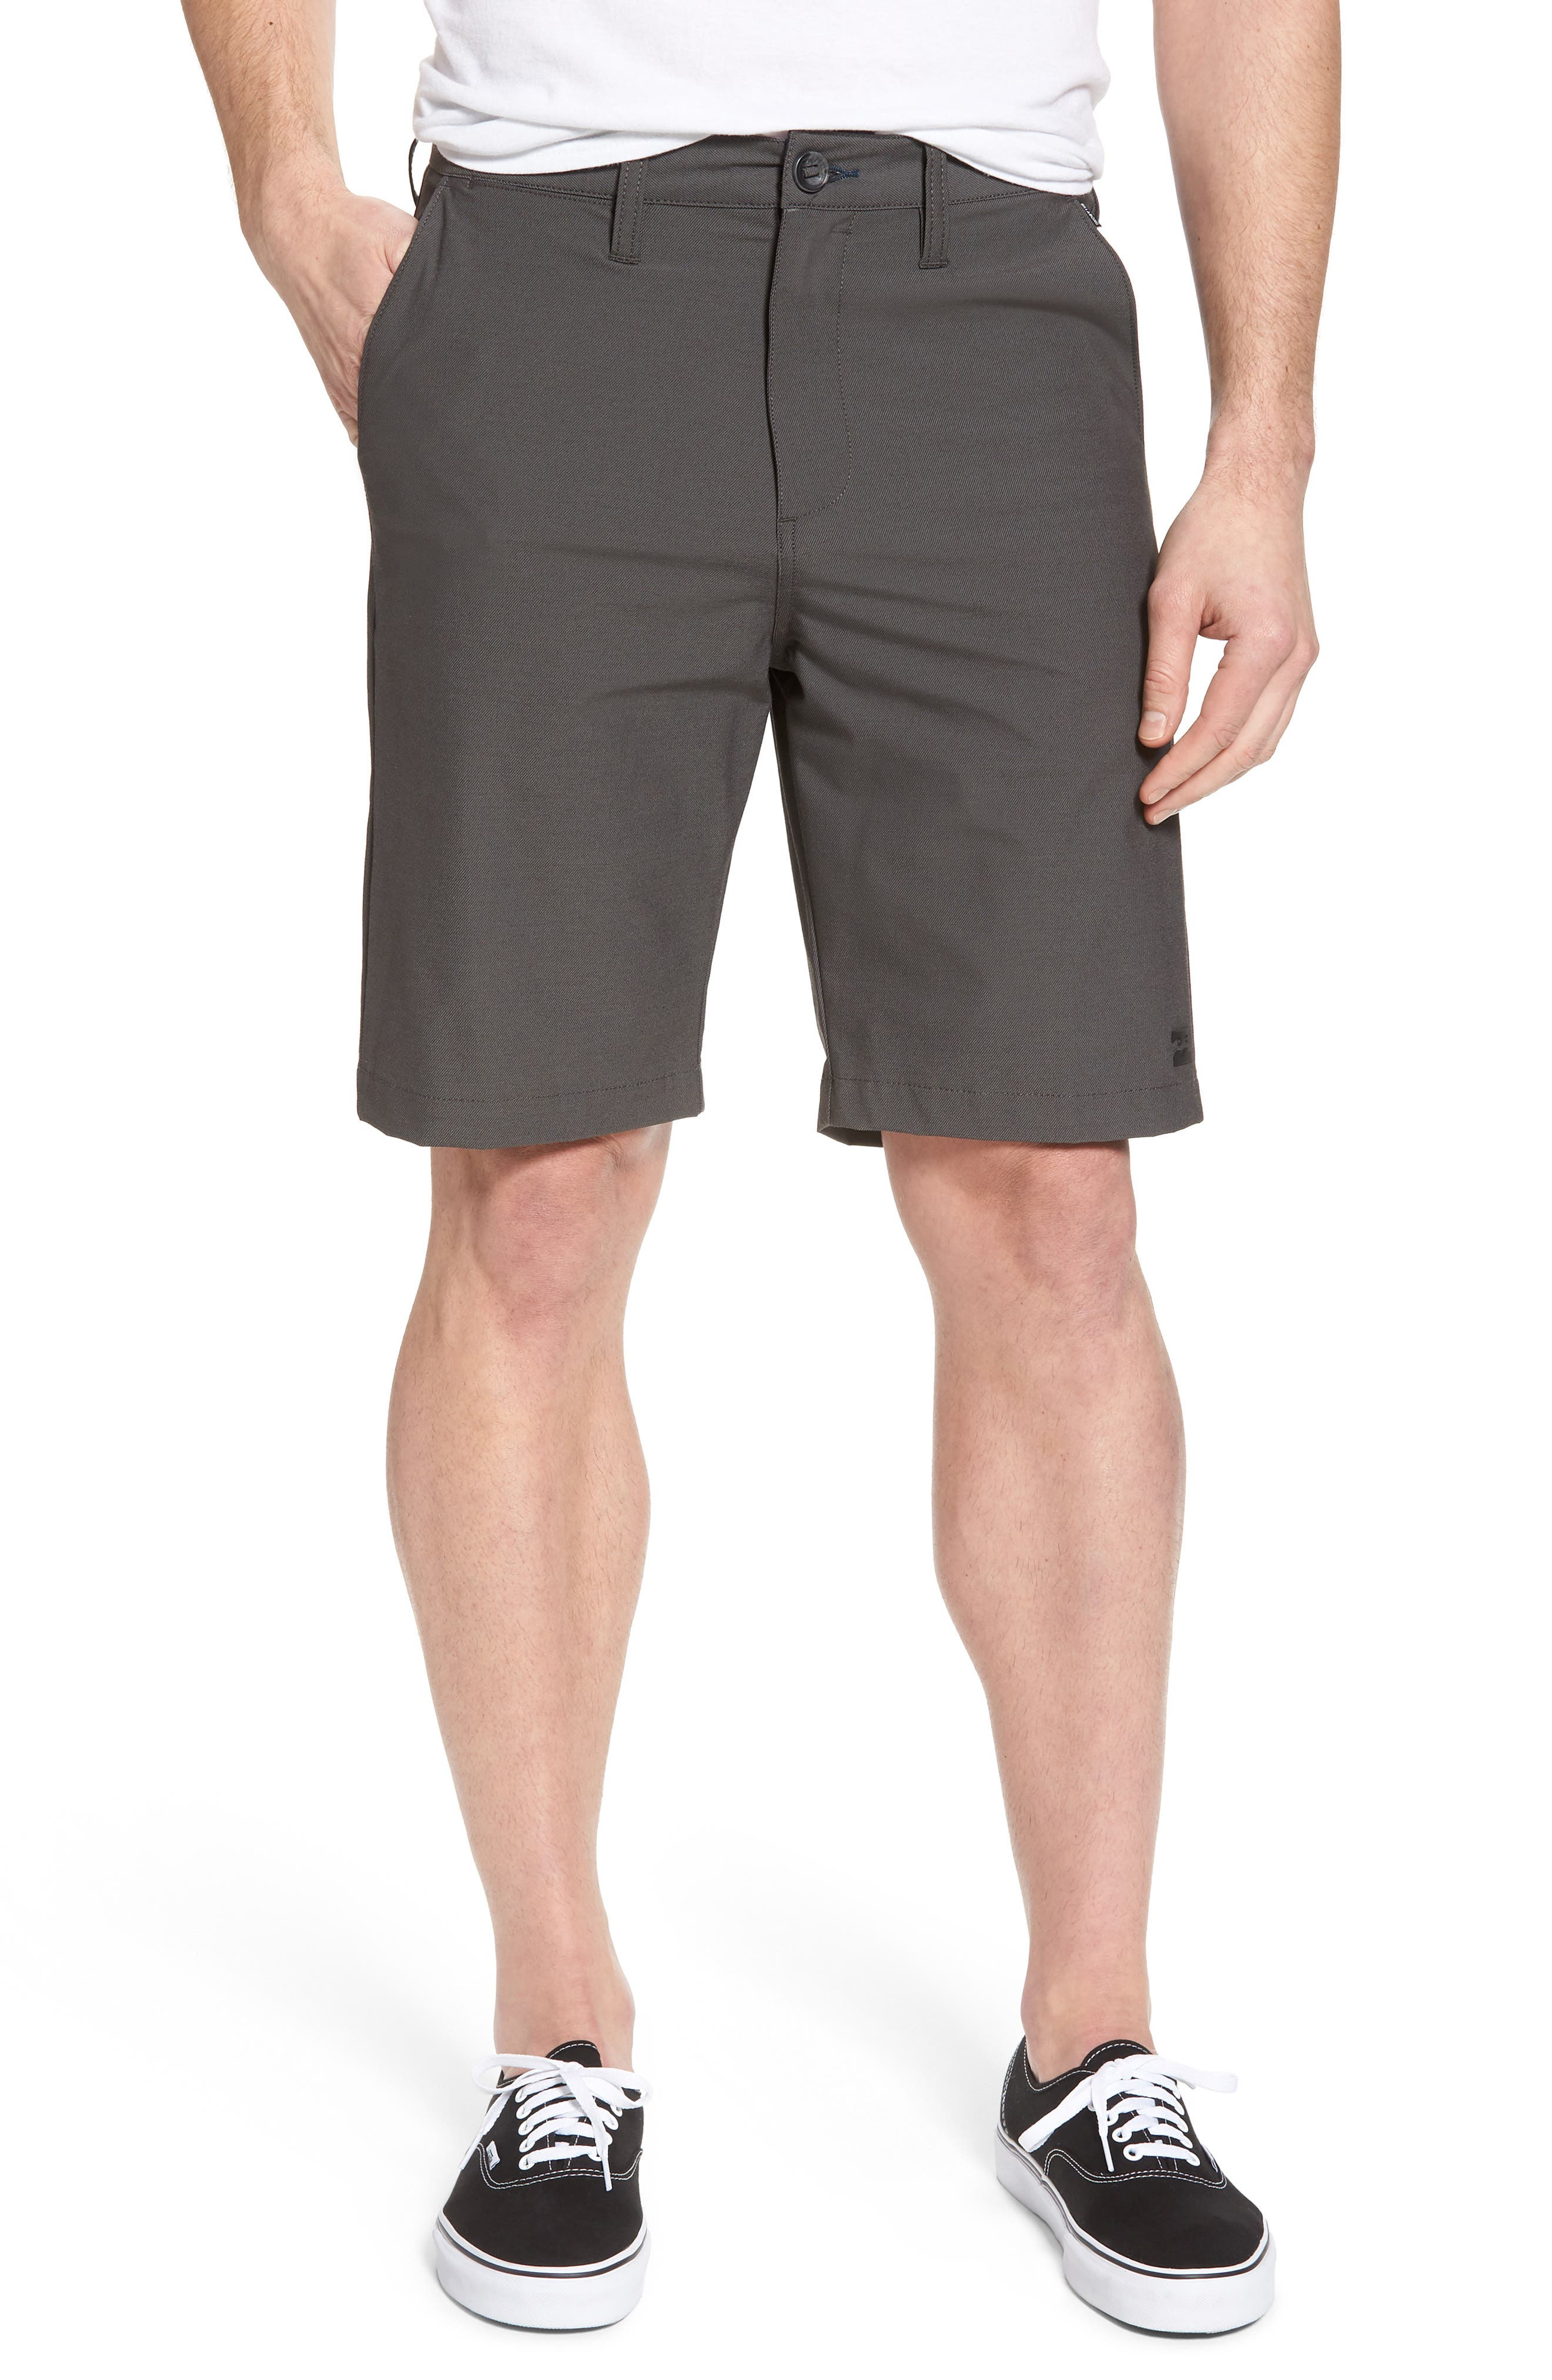 Crossfire X Submersible Twill Shorts,                             Main thumbnail 1, color,                             Black